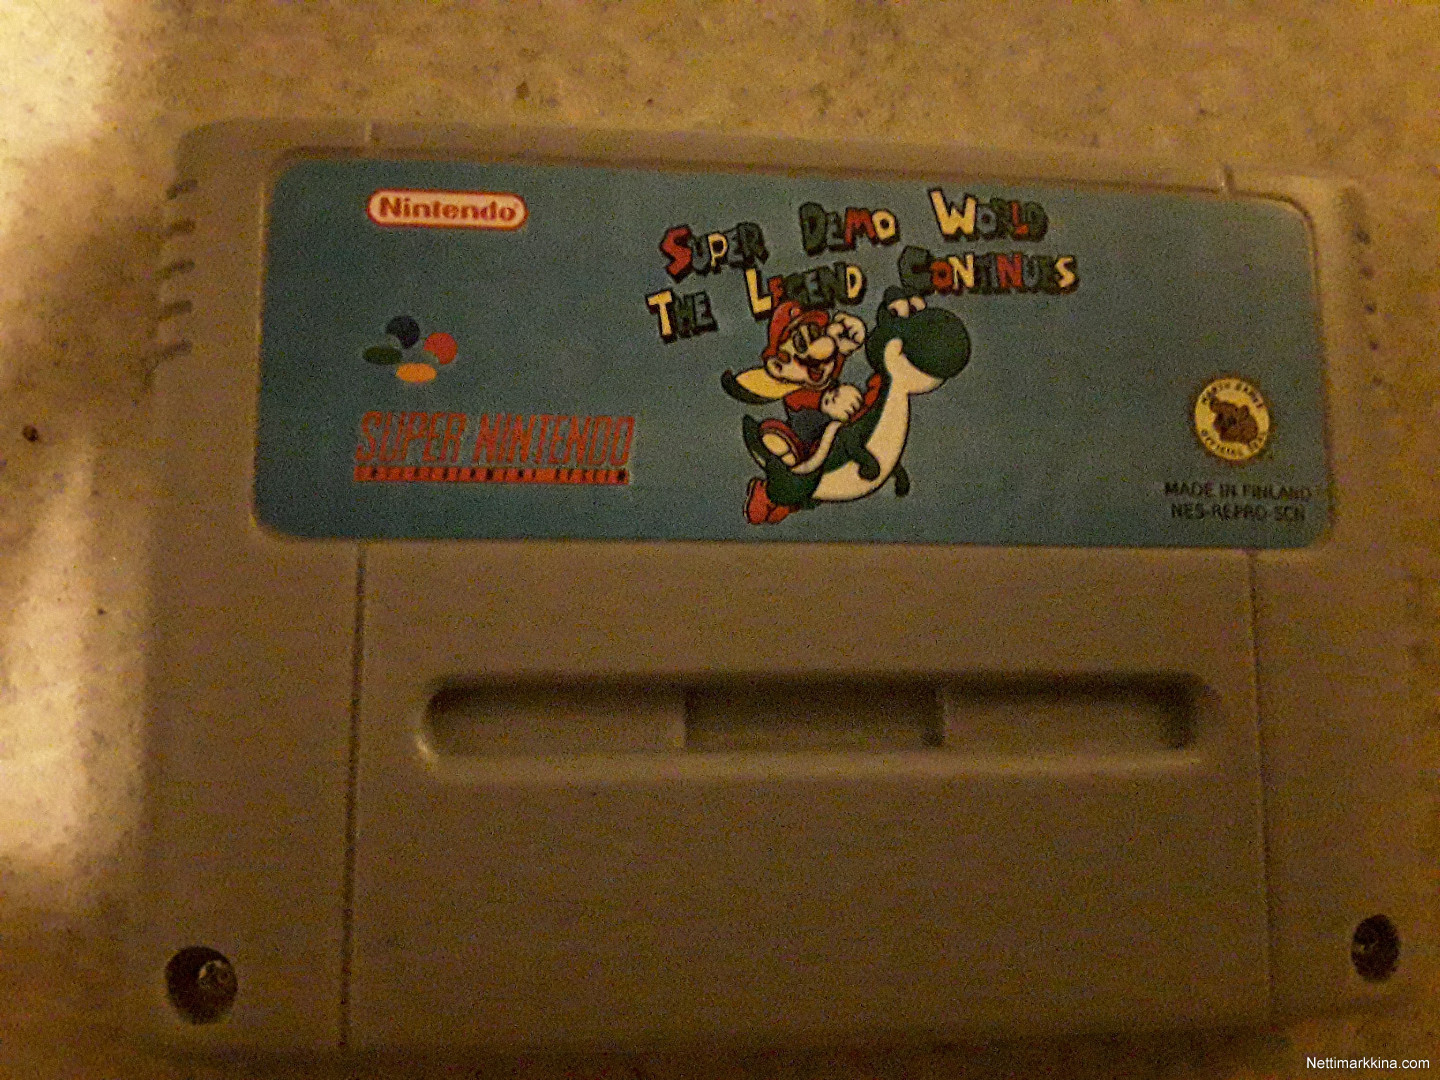 For sale super mario world the Legend contin, Not priced